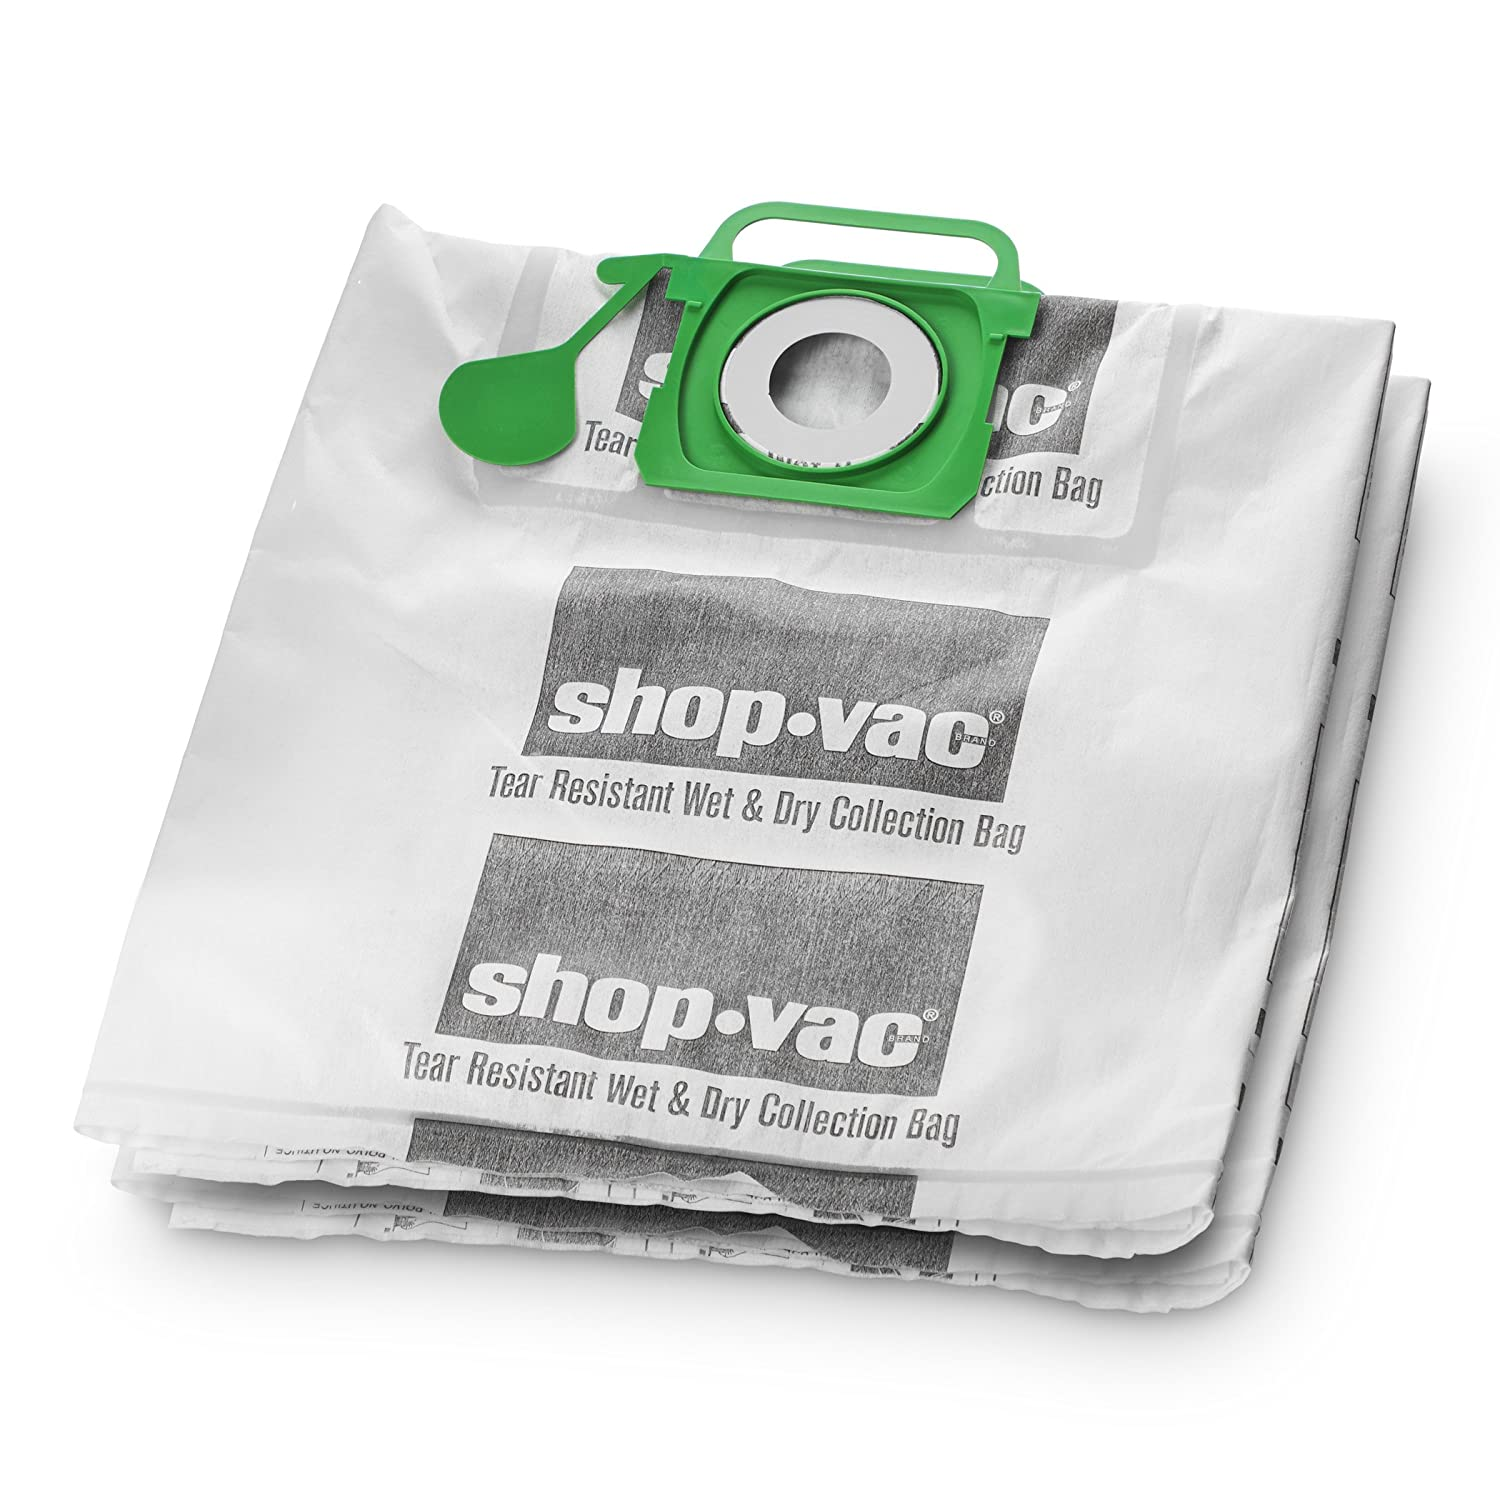 Shop-Vac 9021533 Genuine Wet/Dry Tear Resistant Collection Filter Bags, 5-10 gallon, White